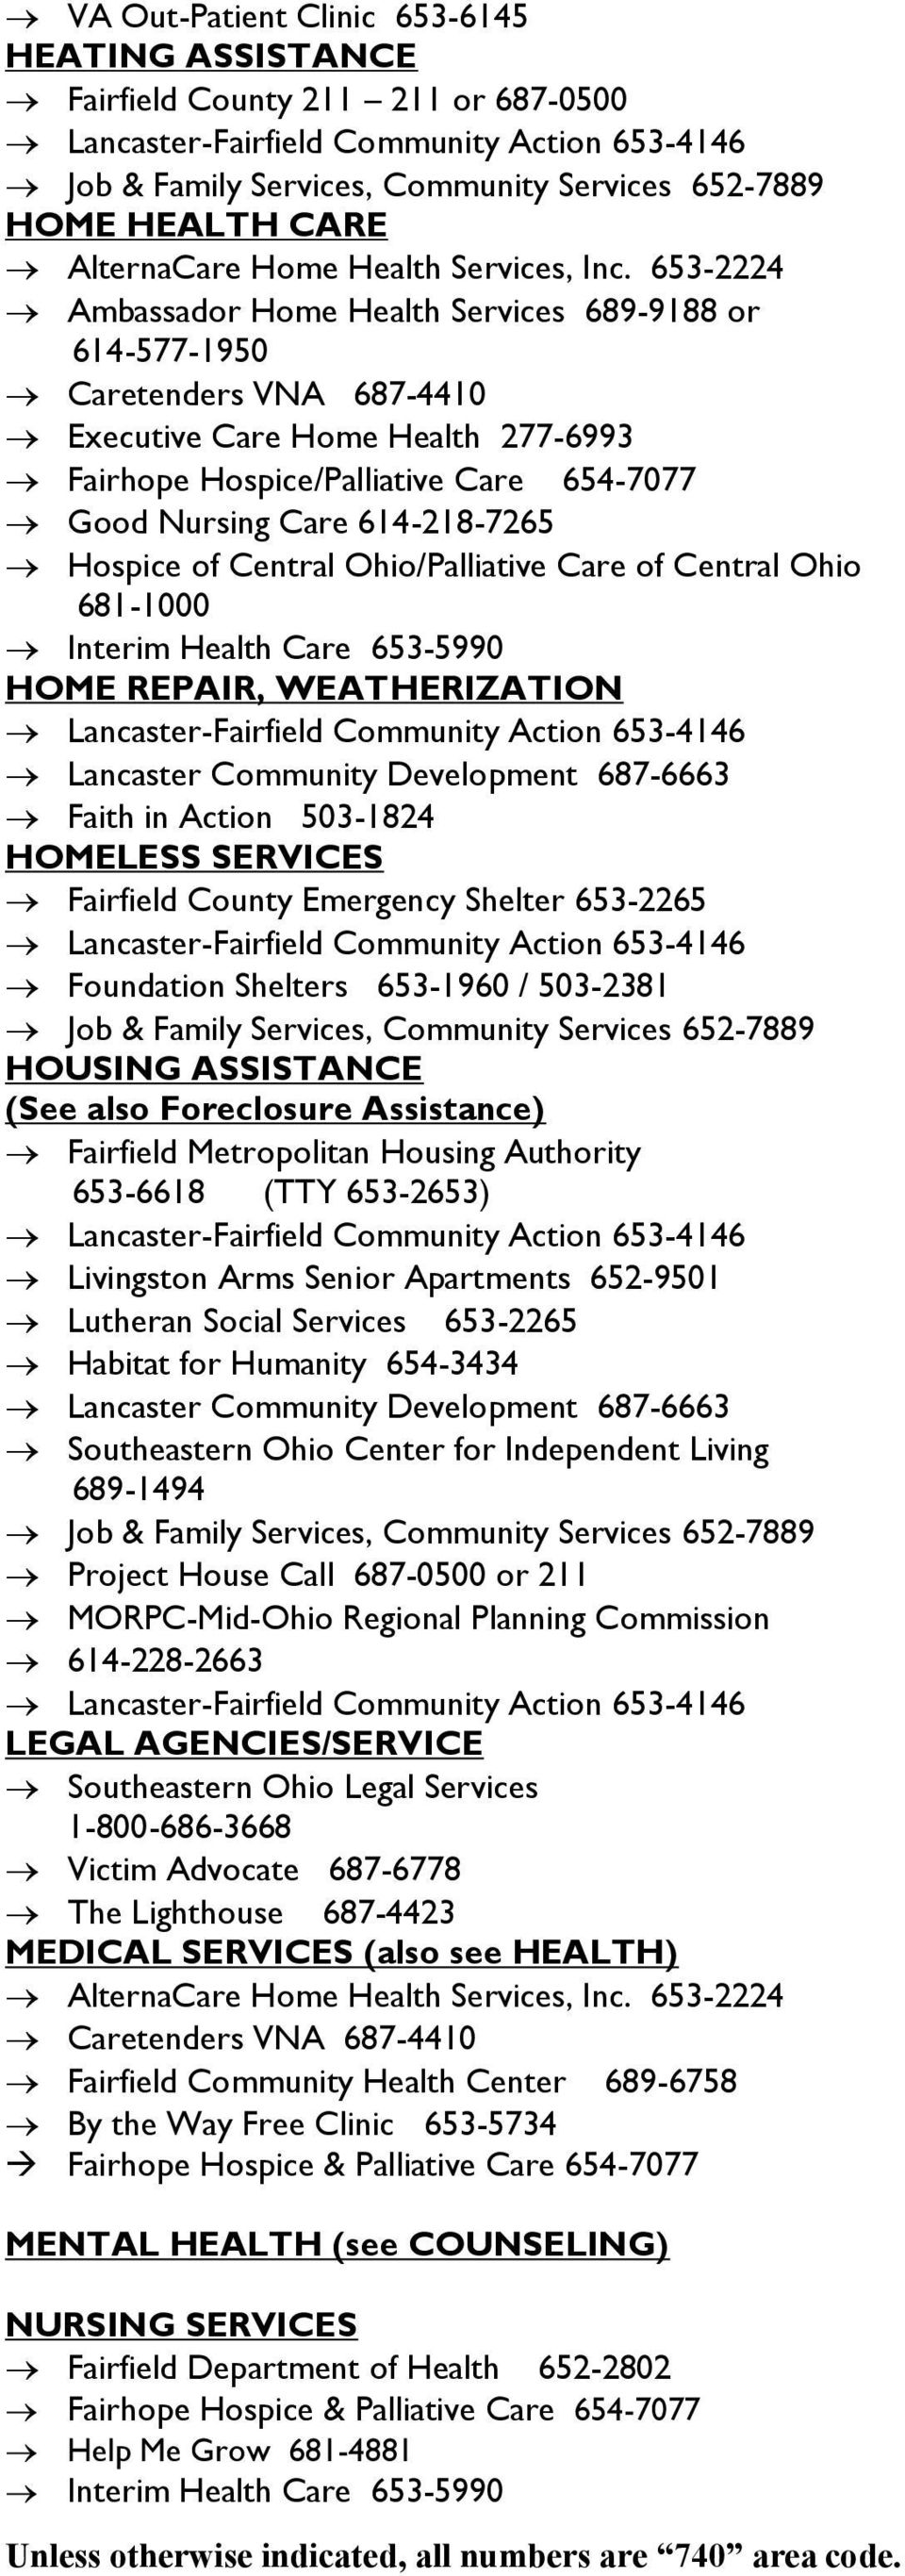 Lancaster Community Development 687-6663 Faith in Action 503-1824 HOMELESS SERVICES Fairfield County Emergency Shelter 653-2265 Foundation Shelters 653-1960 / 503-2381 HOUSING ASSISTANCE (See also